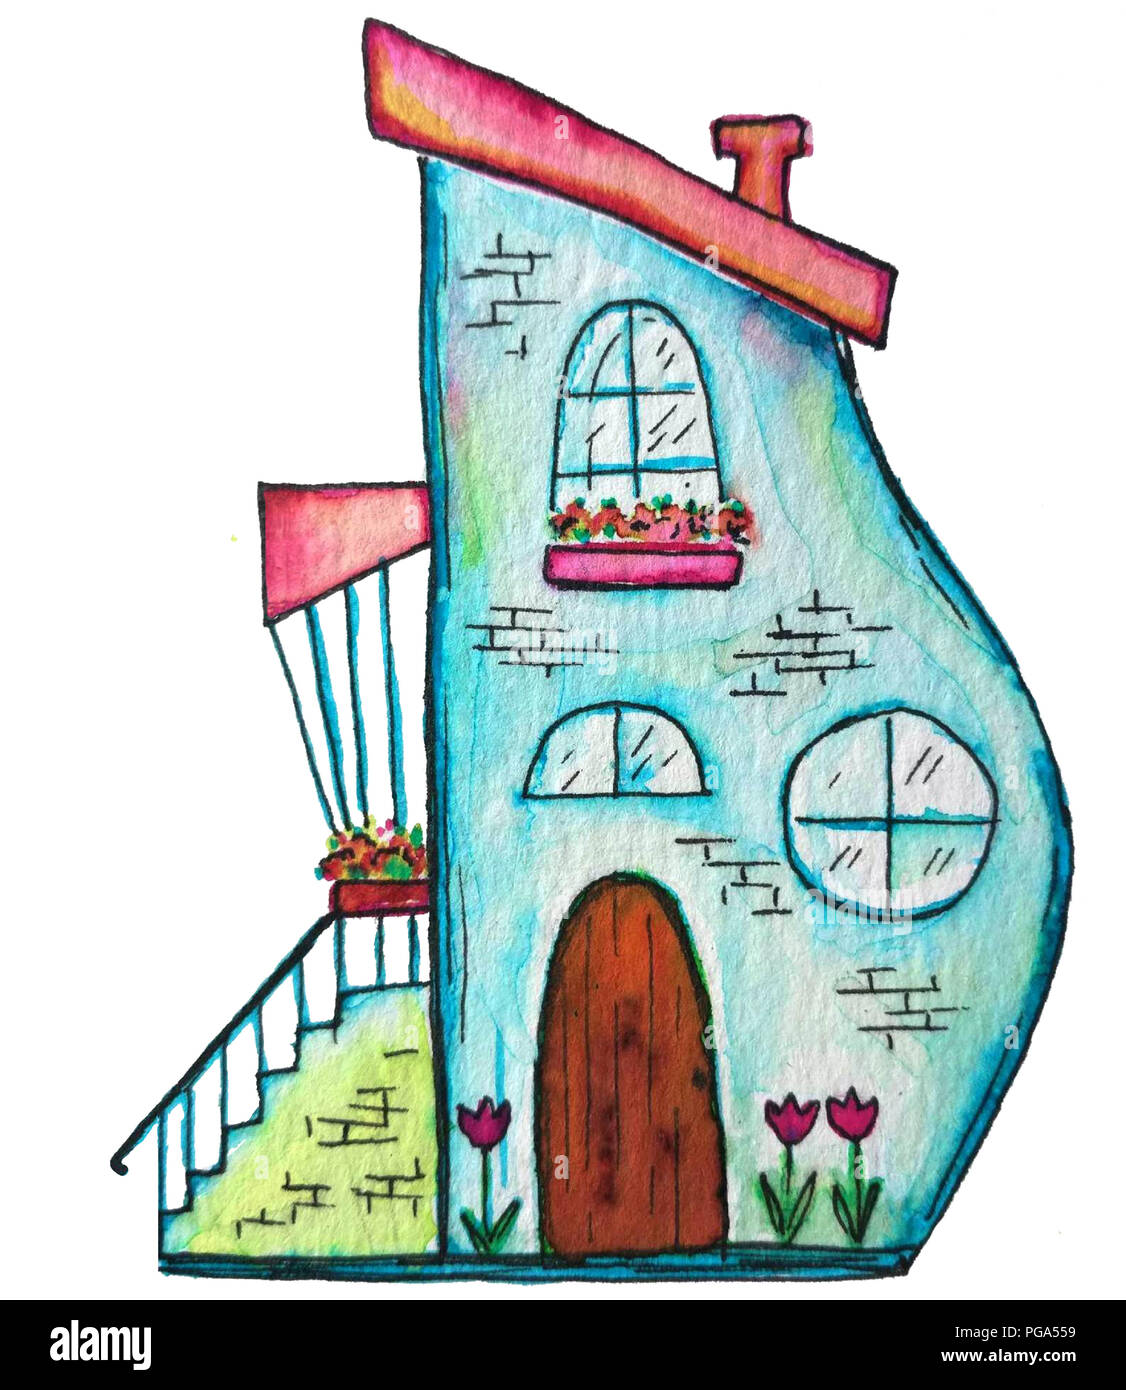 Cute fairy house watercolor illustration. Hand painted illustration can be used for cute print design for greeting holiday card or fashion design. - Stock Image